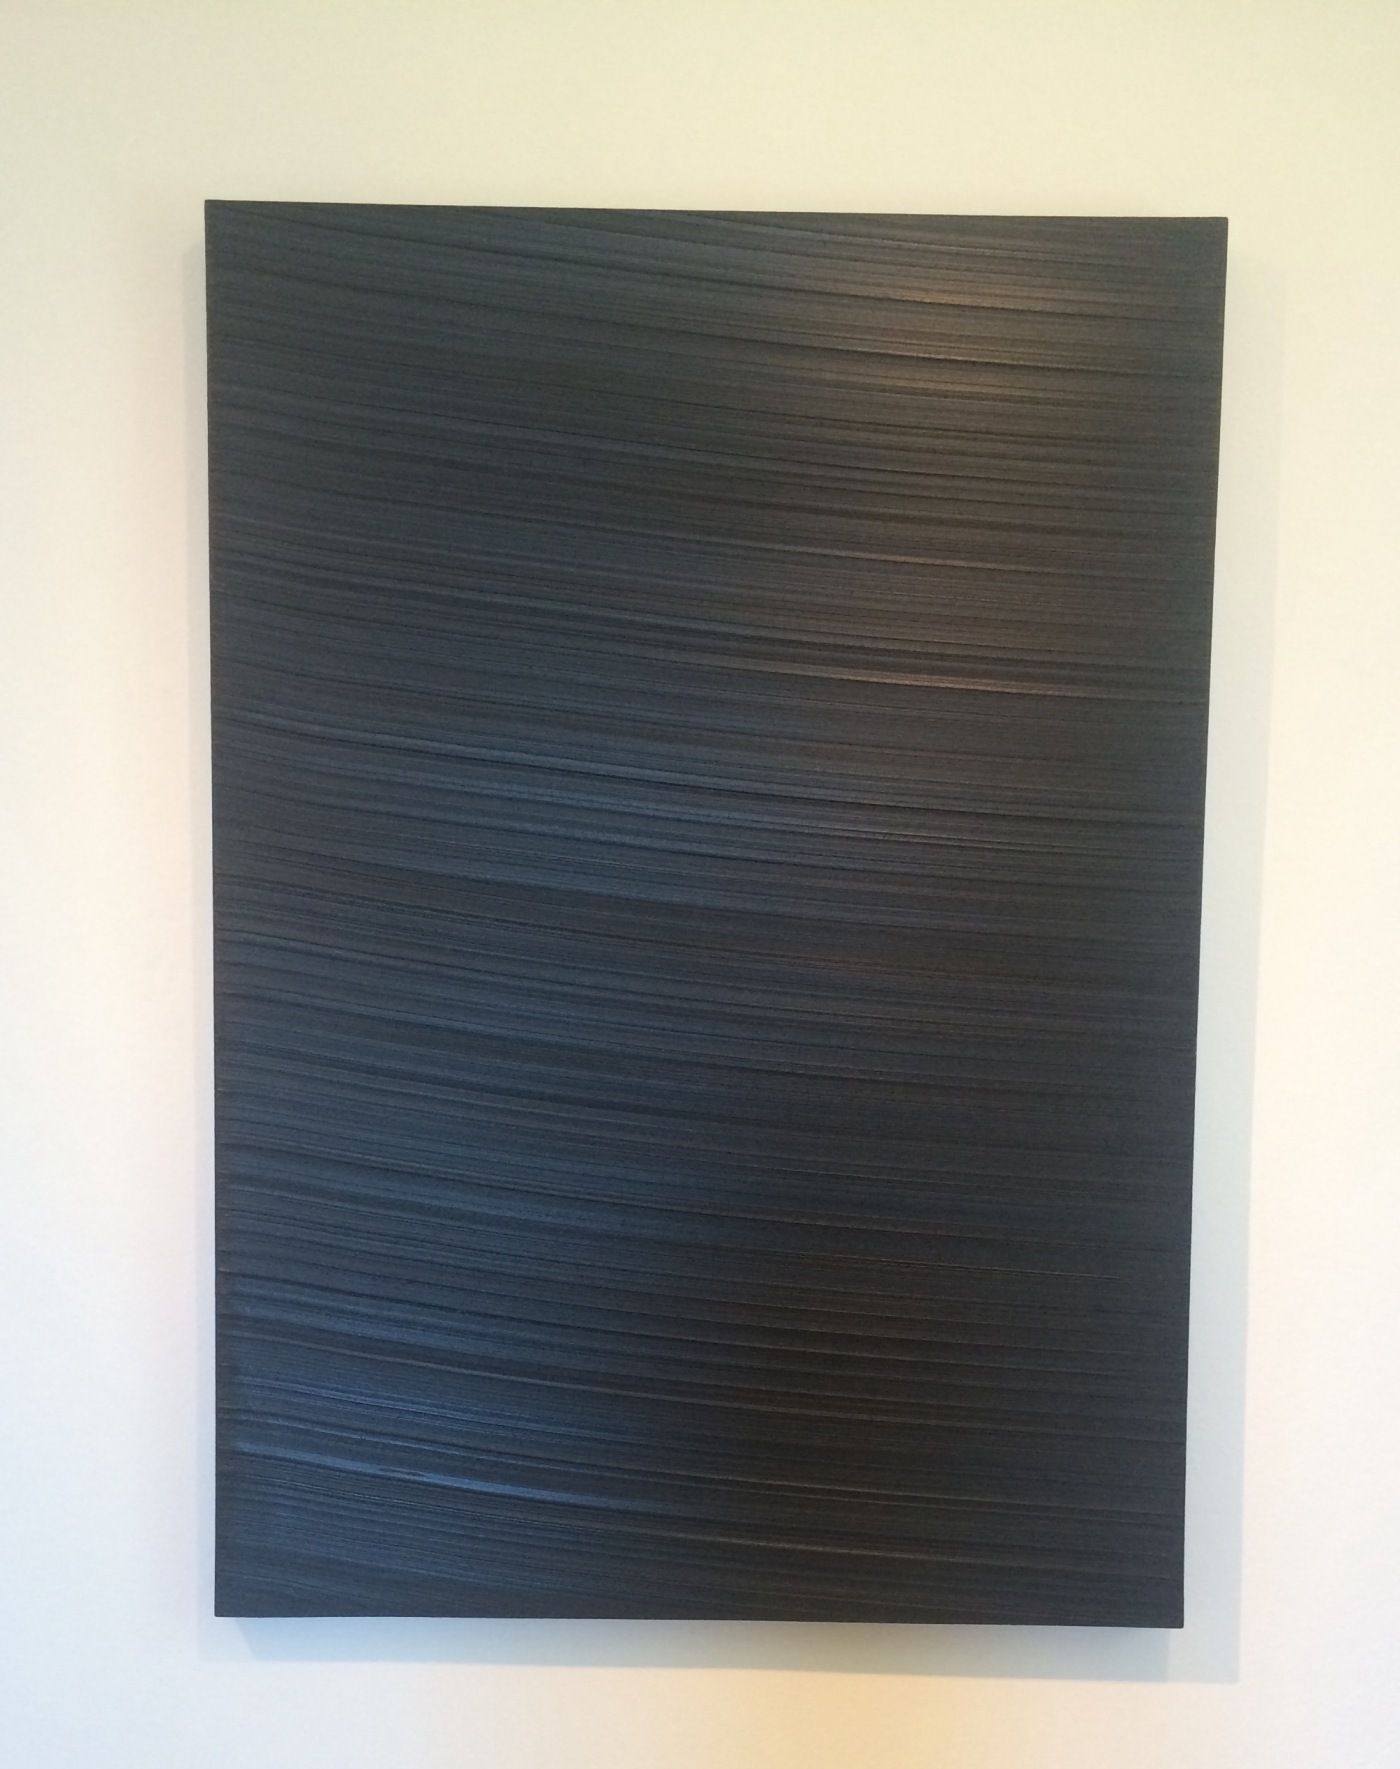 Soulages Hermitage Lausanne